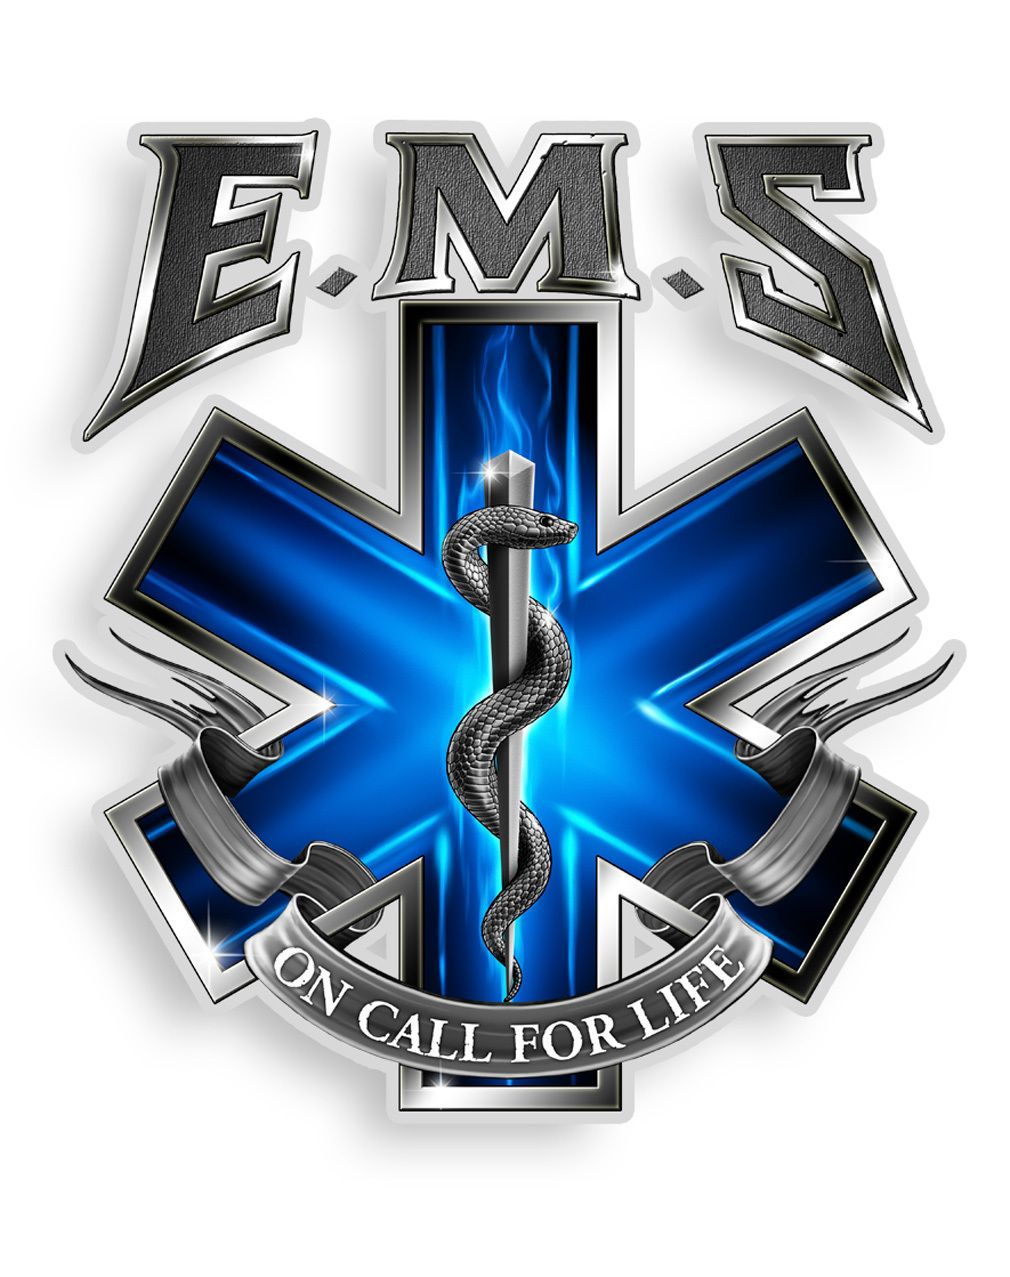 on call for life ems logos pinterest ems tattoos rh pinterest ca ems logistics ltd ems login